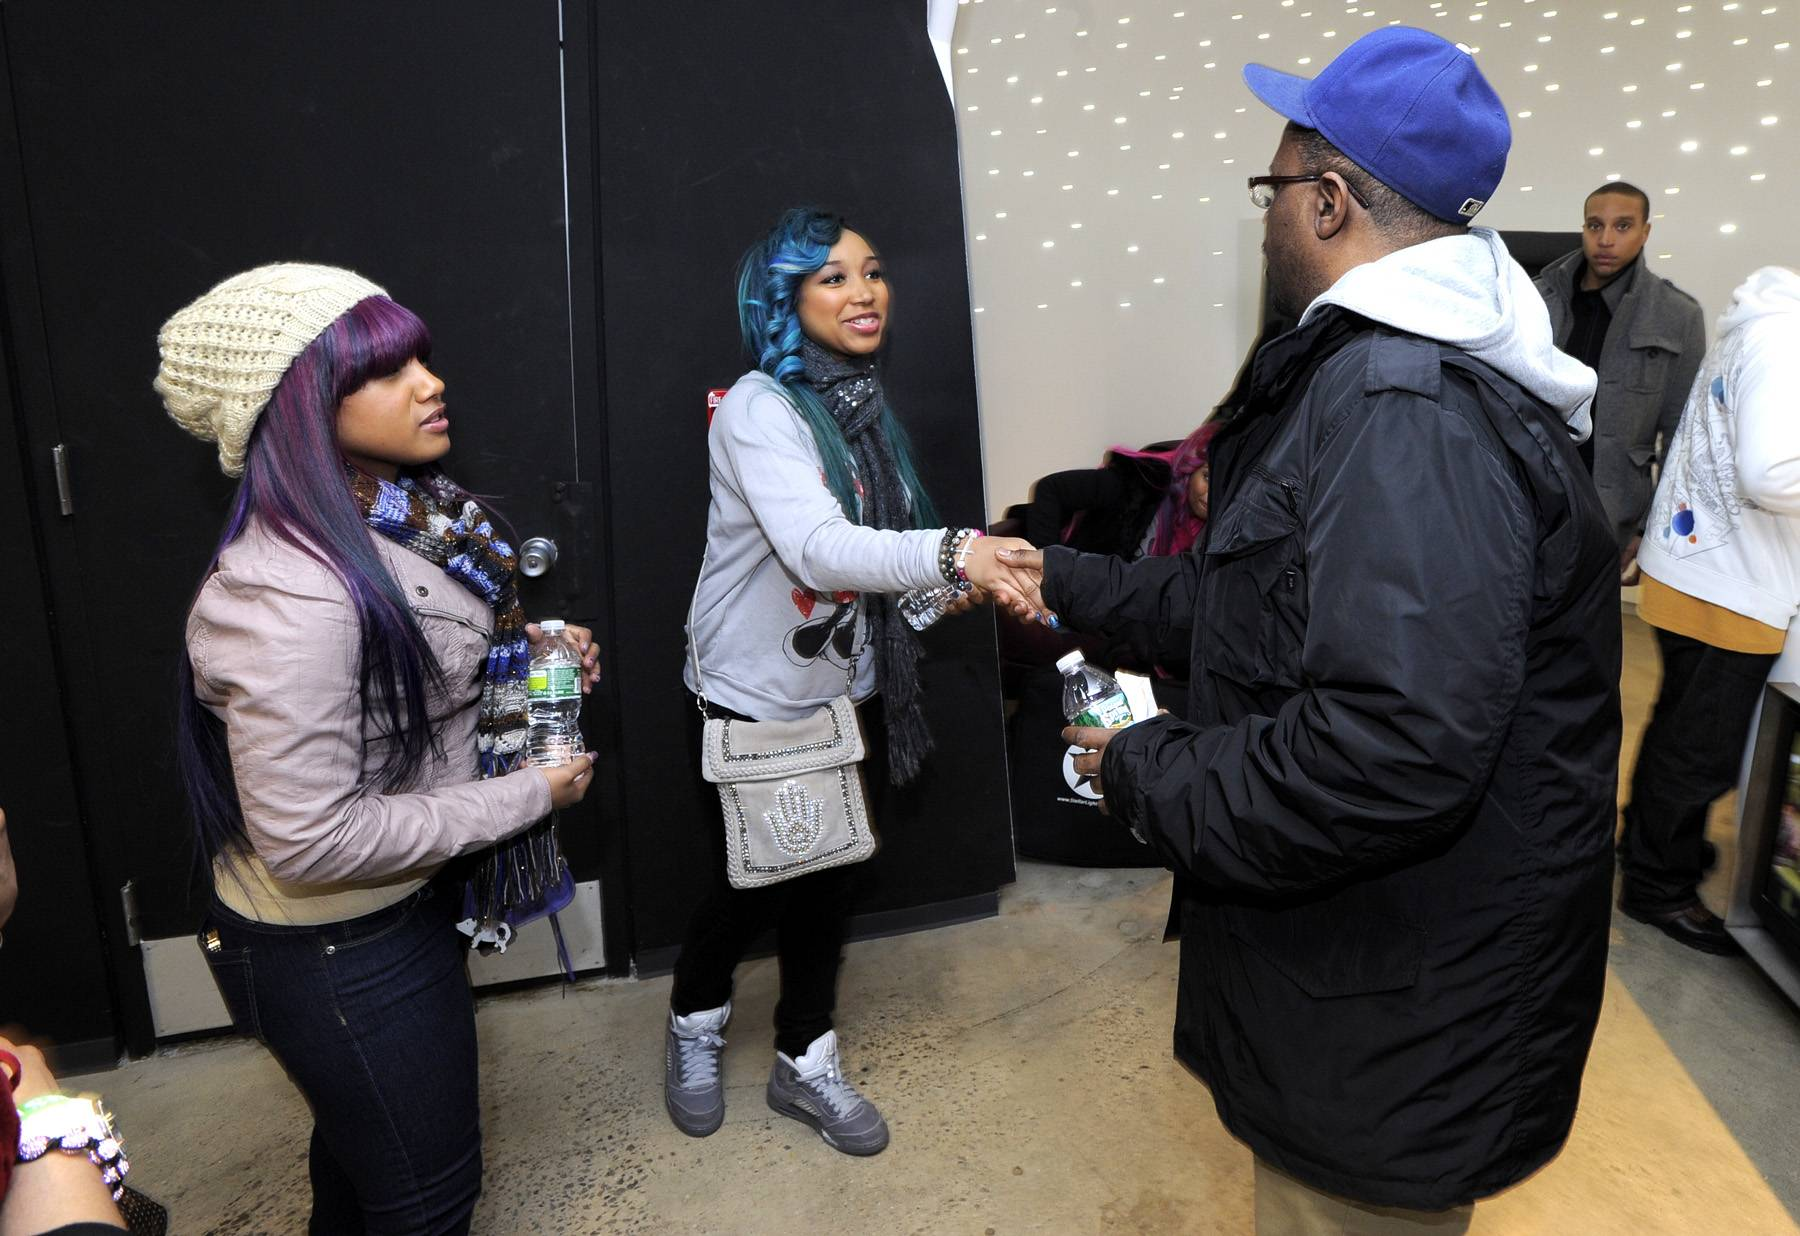 Pretty Girlz - Babydoll and Star shake hands with a BET staff member before an impromptu performance!(Photo: John Ricard / BET)